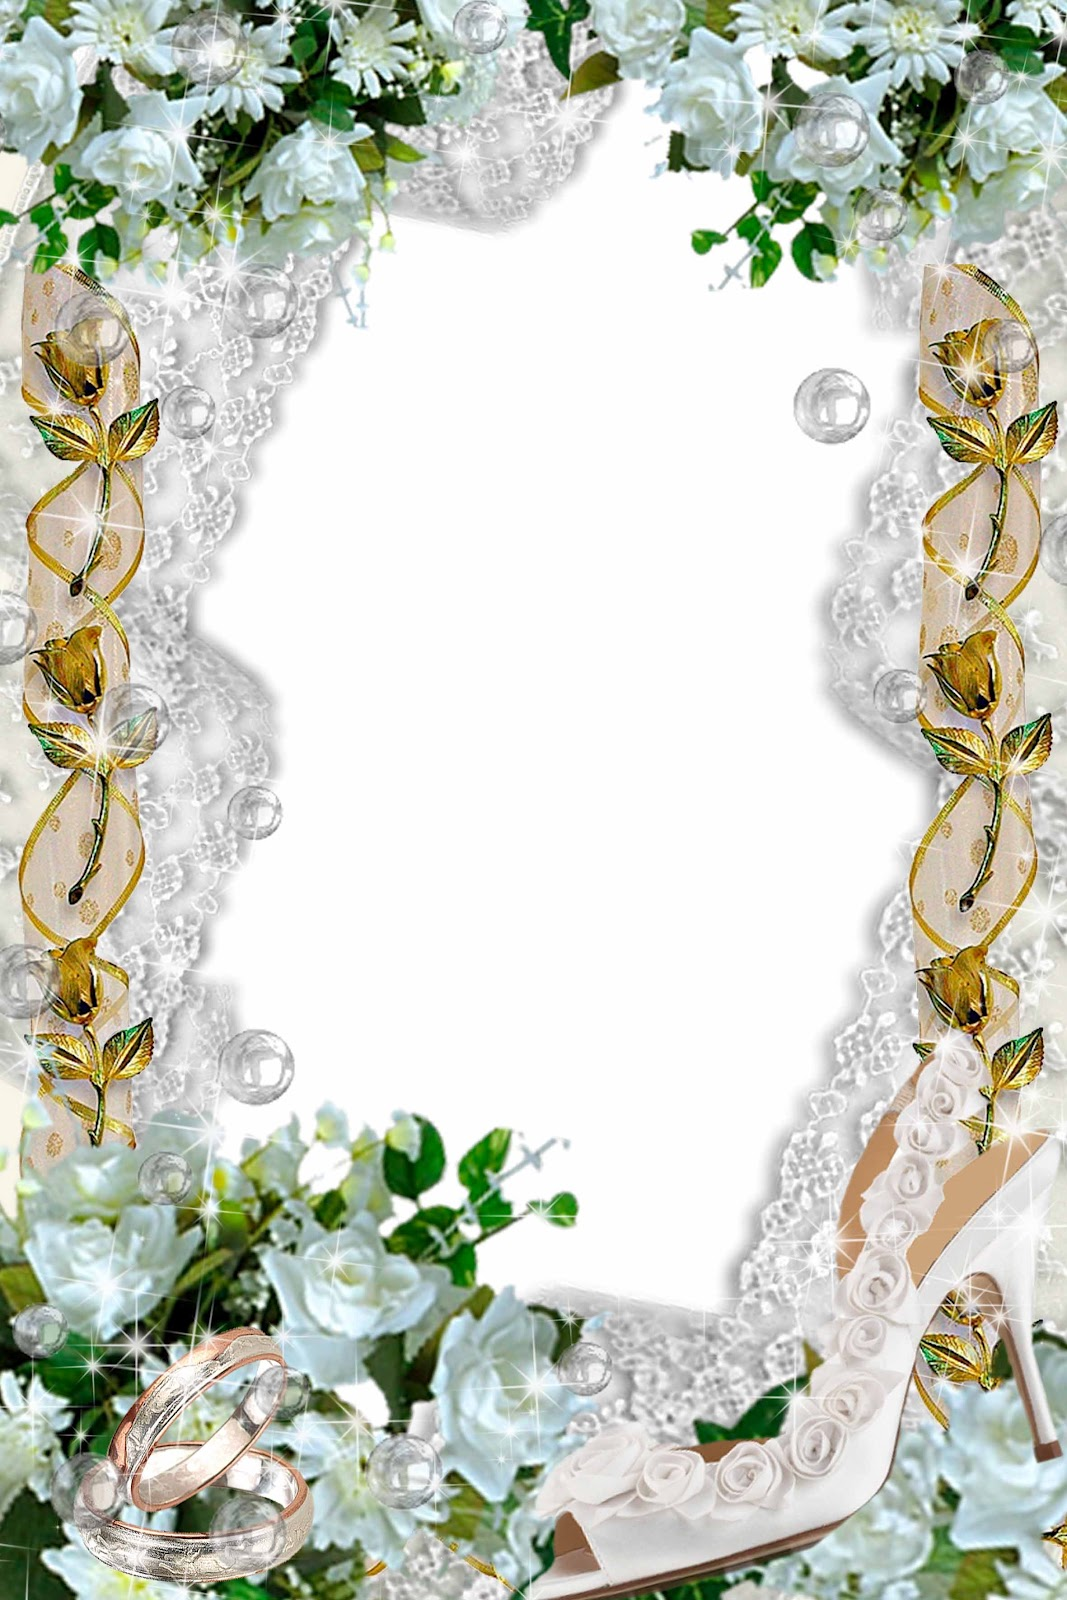 Free Download PNG Wedding Frame #35185 - Free Icons and PNG Backgrounds